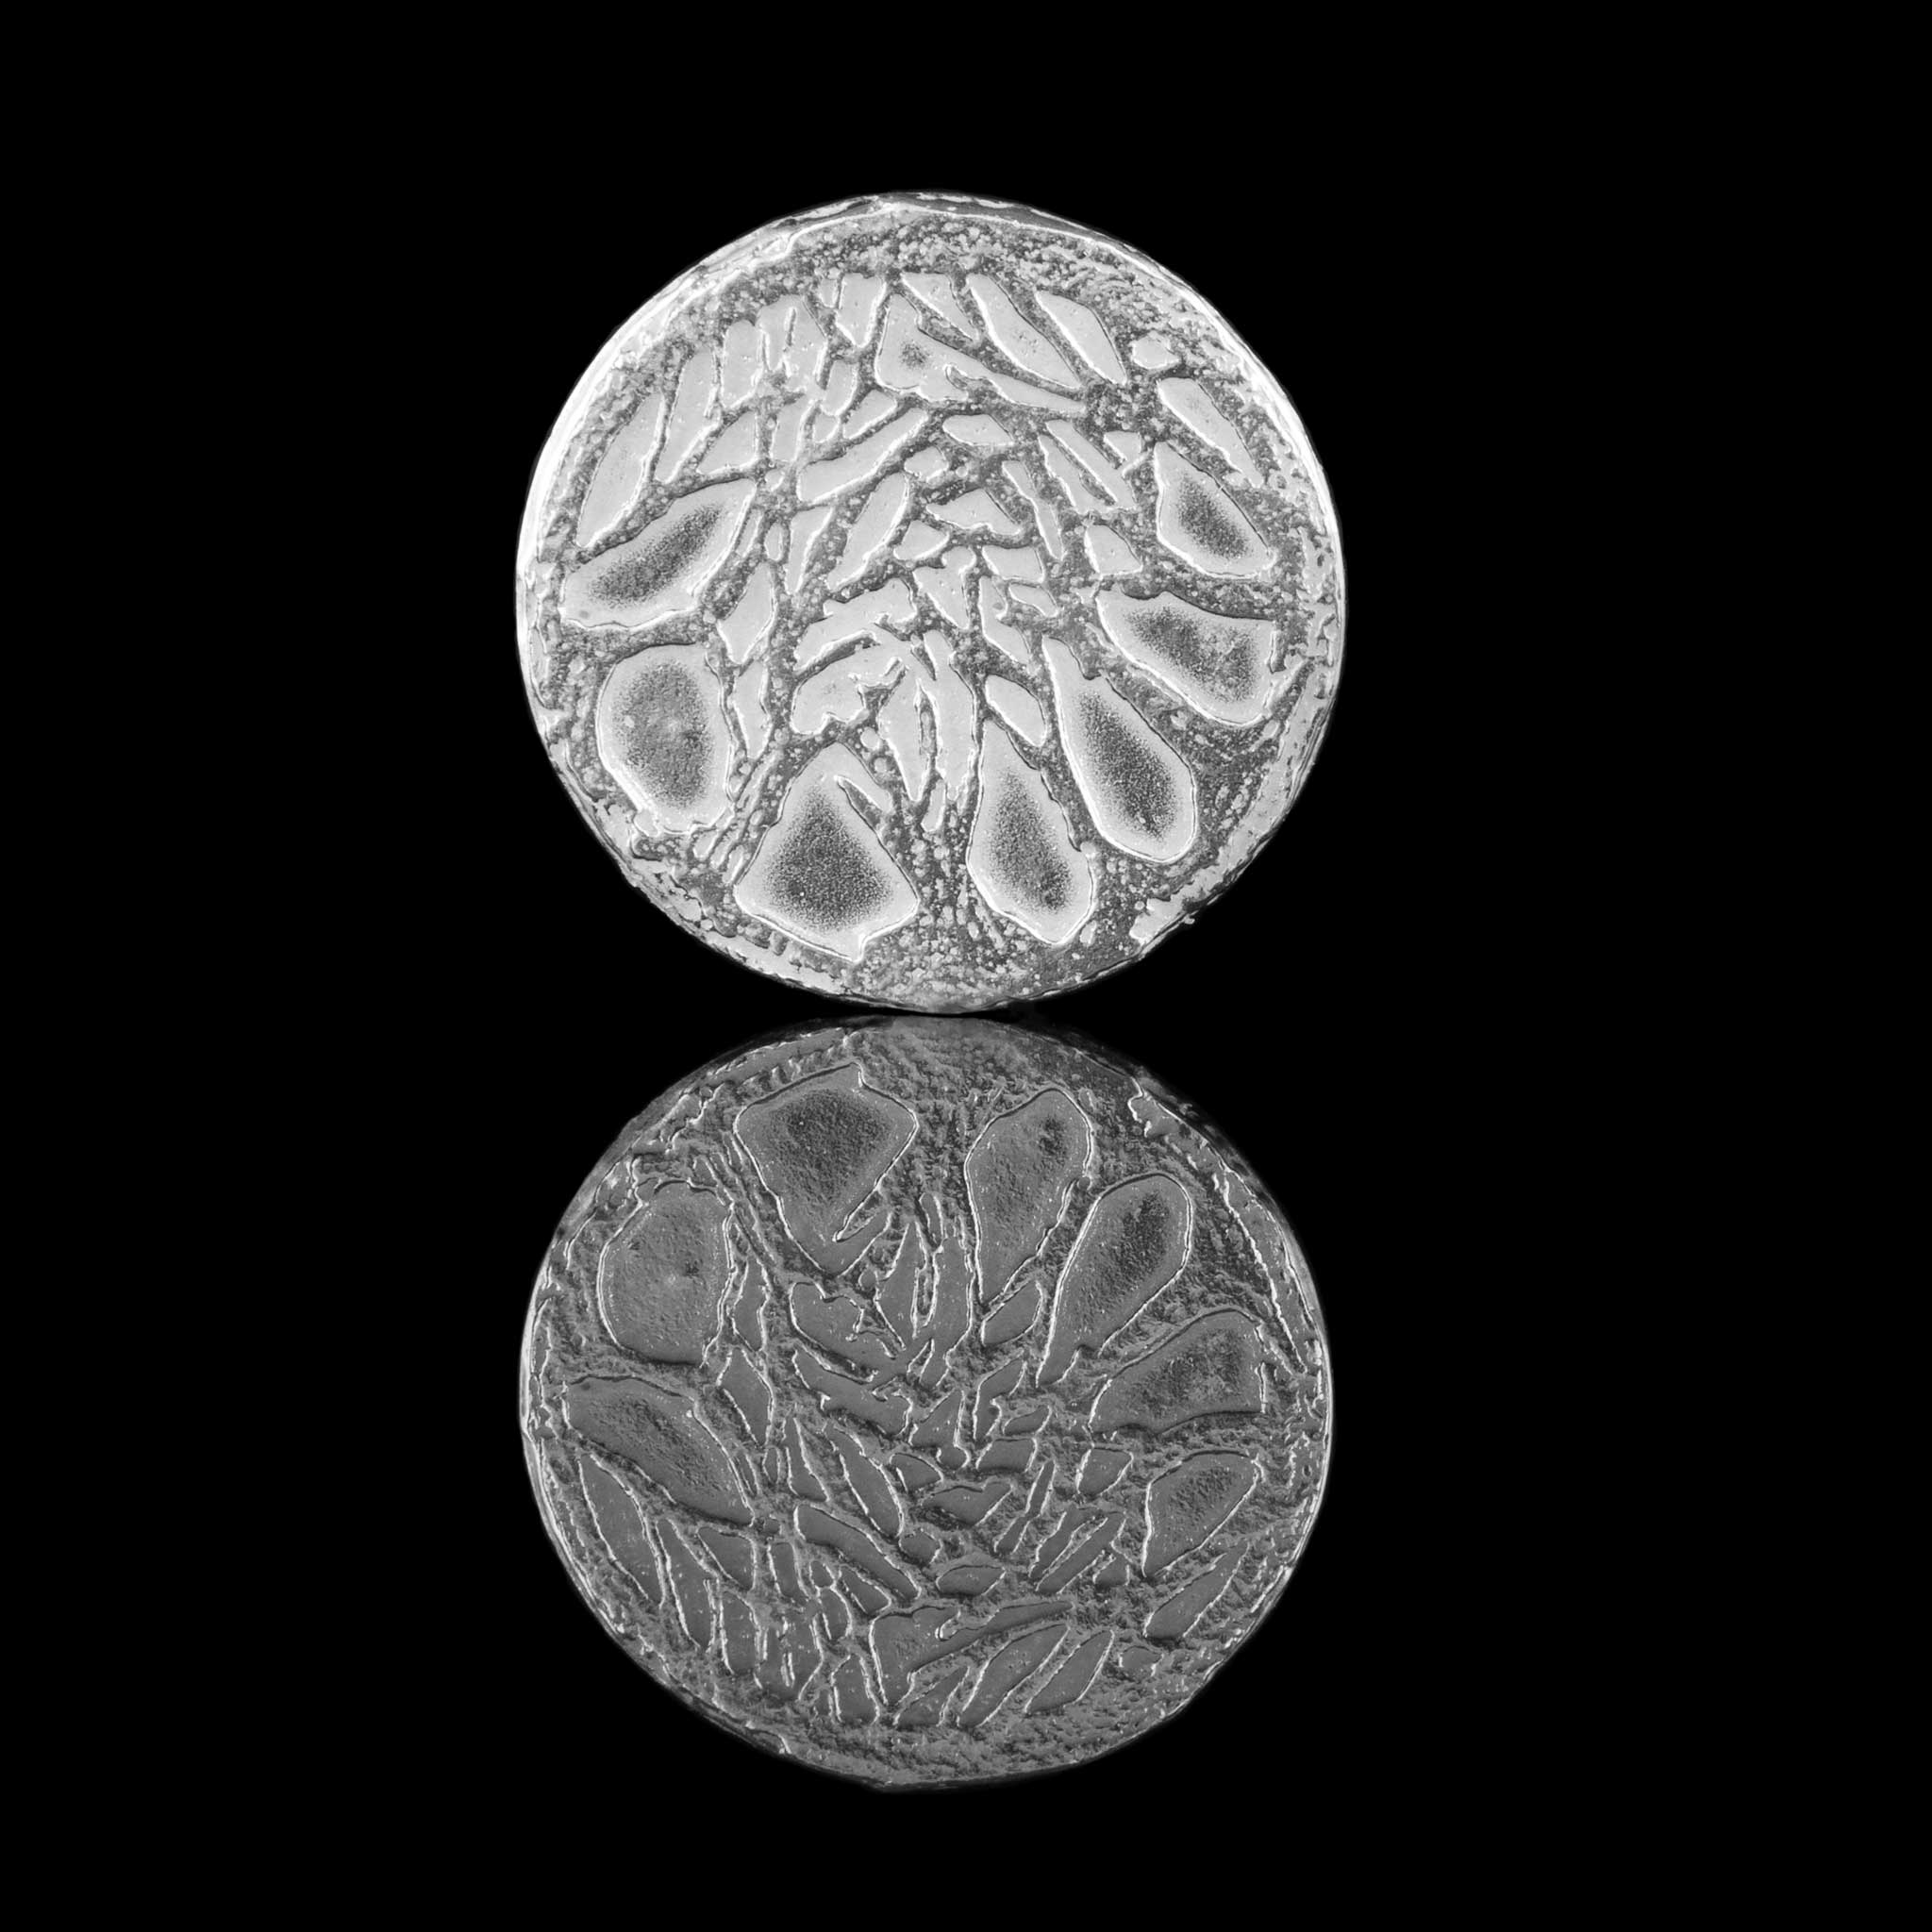 Sterling Silver Dark Hedges Lapel Pin with tree design to front side. Made in Uk by NI Silver Jewellery designers